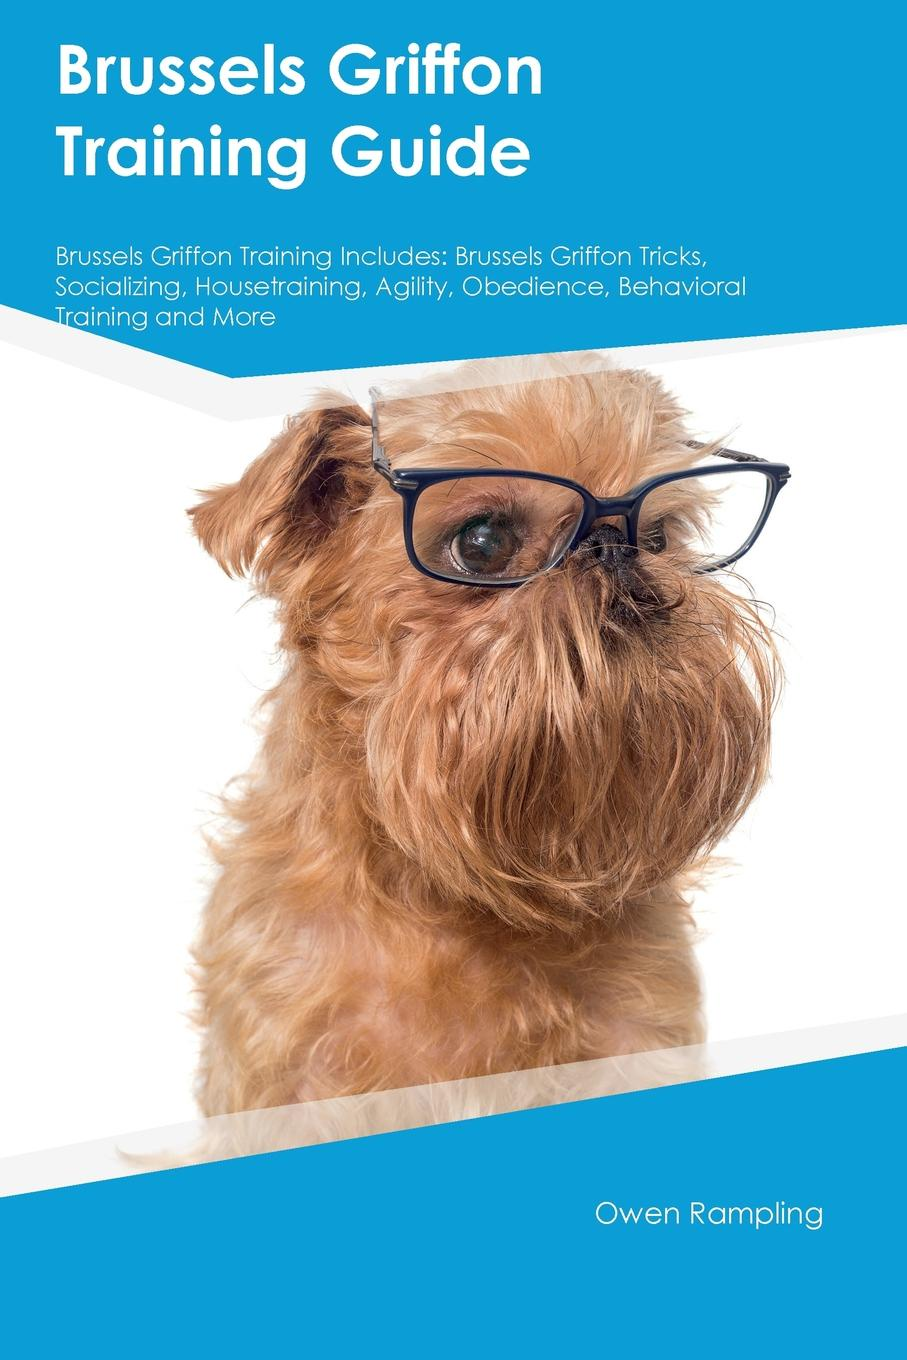 David Dickens Brussels Griffon Training Guide Brussels Griffon Training Includes. Brussels Griffon Tricks, Socializing, Housetraining, Agility, Obedience, Behavioral Training and More brussels type